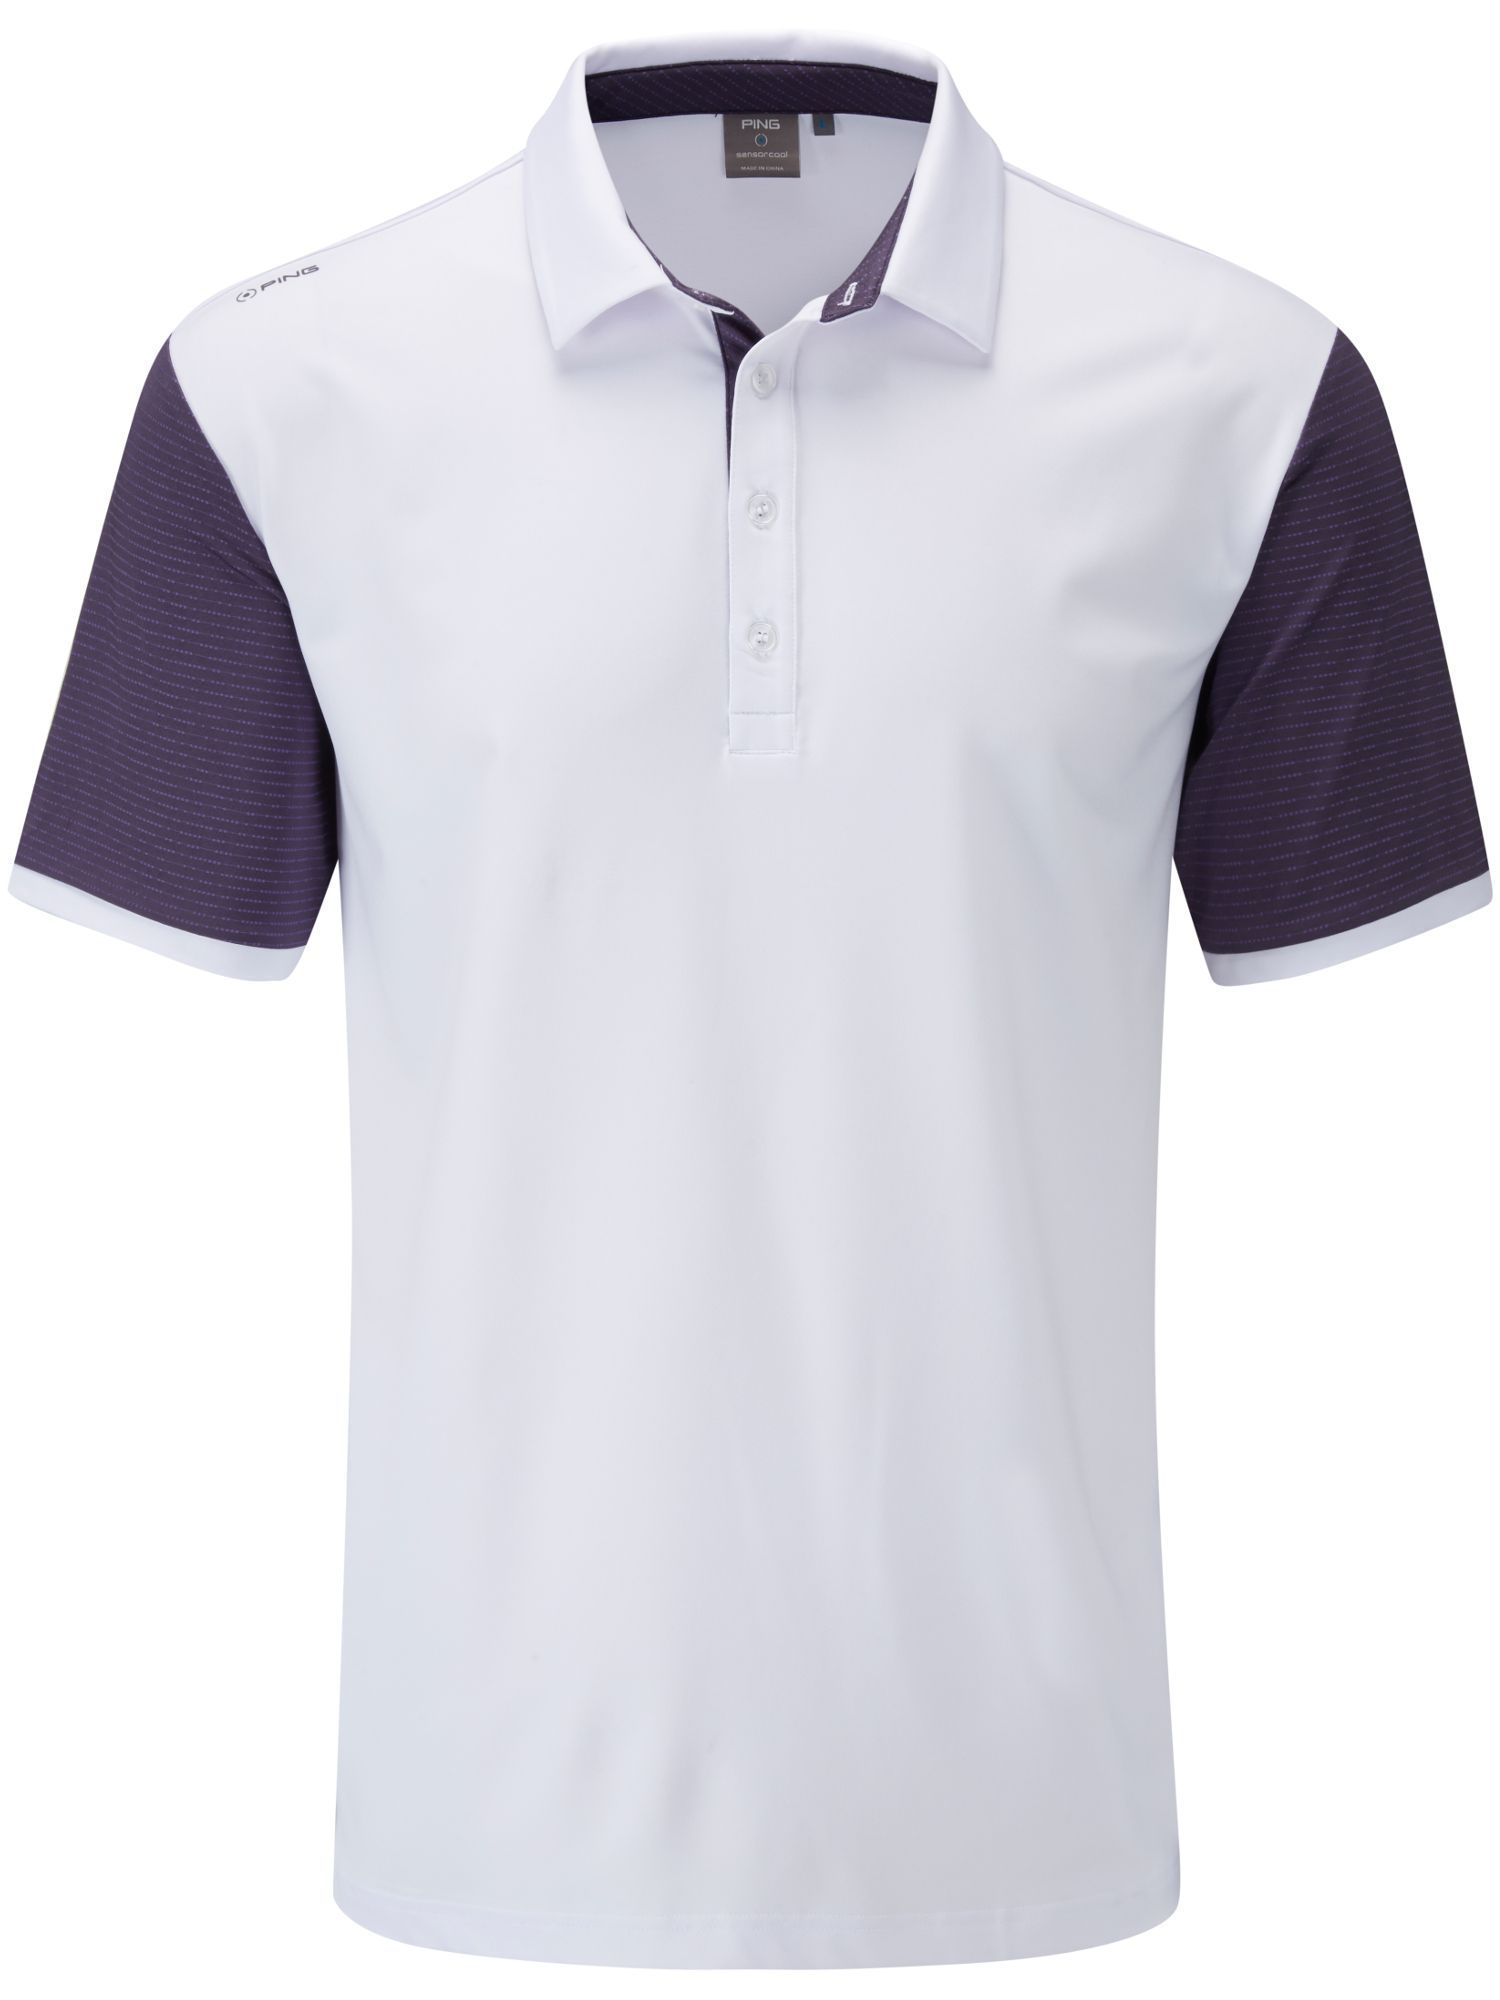 Men's Ping Sotto Polo, White